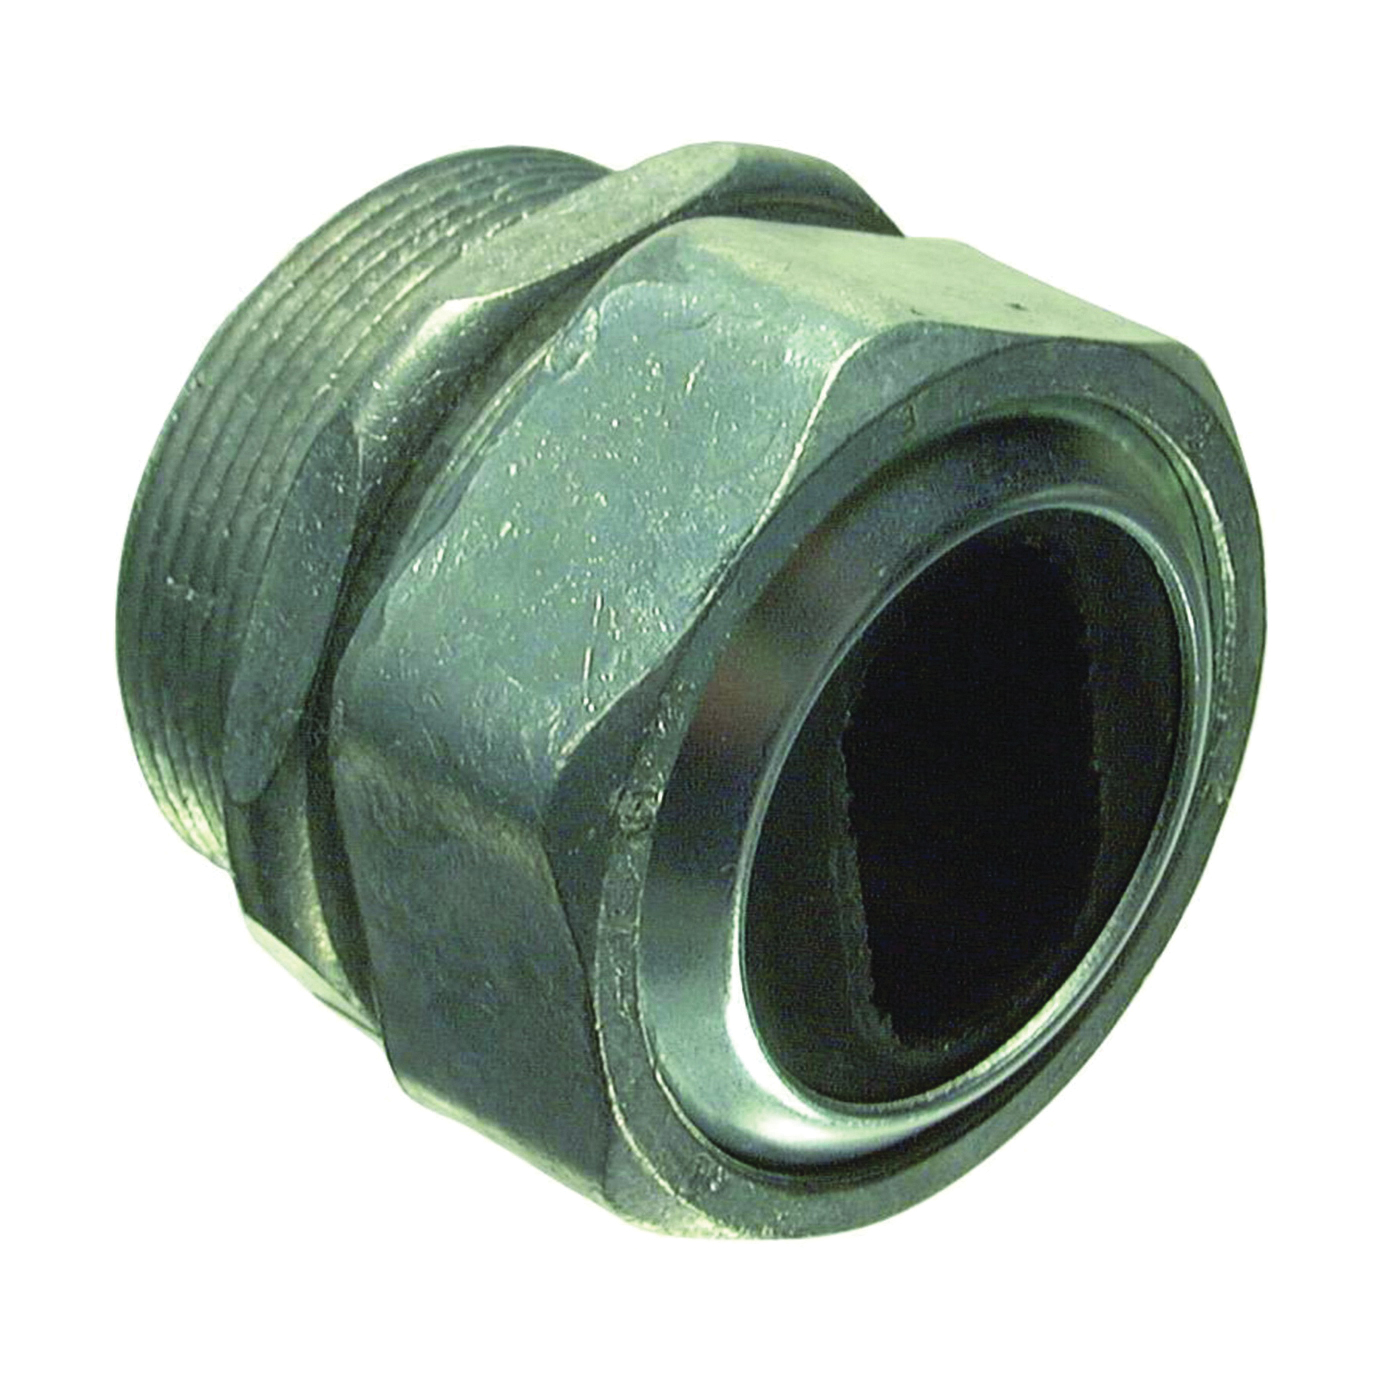 Picture of Halex 08212B Watertight Connector, 1-1/4 in Hub, Compression, Zinc